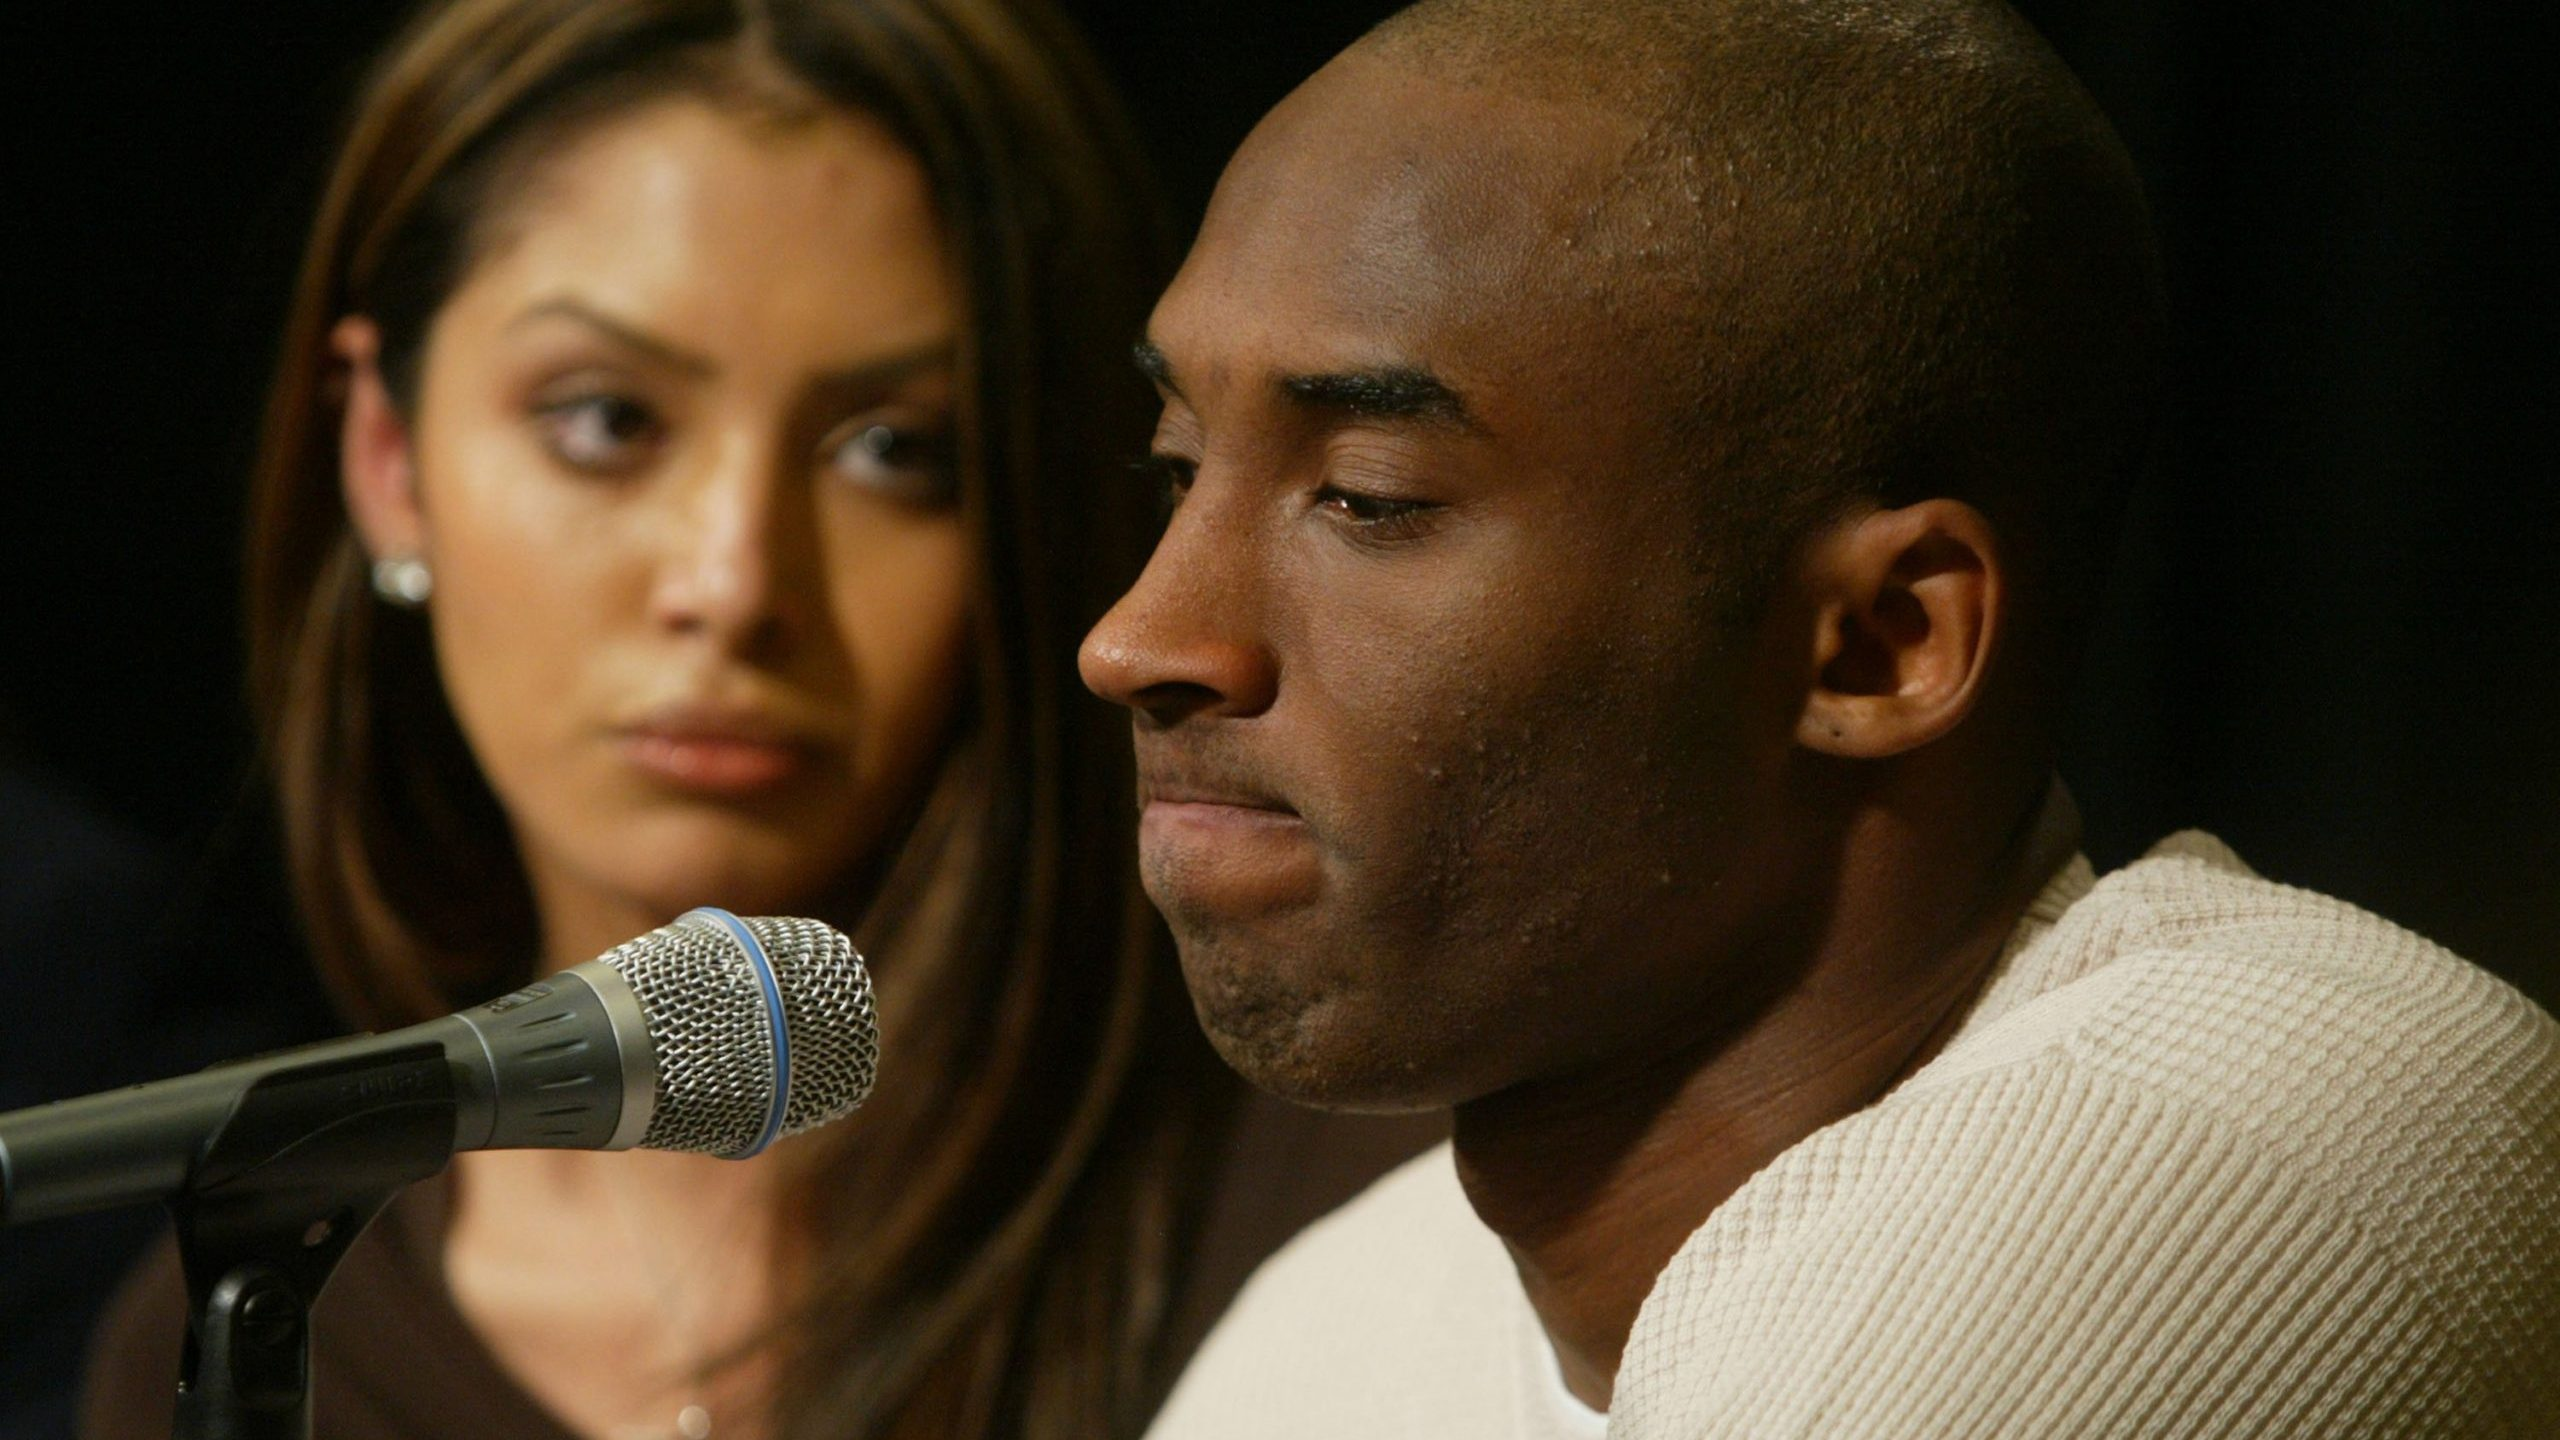 Kobe Bryant and his wife Vanessa attend a news conference at Staples Center on July 18, 2003 in Los Angeles. (Credit: J. Emilio Flores/Getty Images)